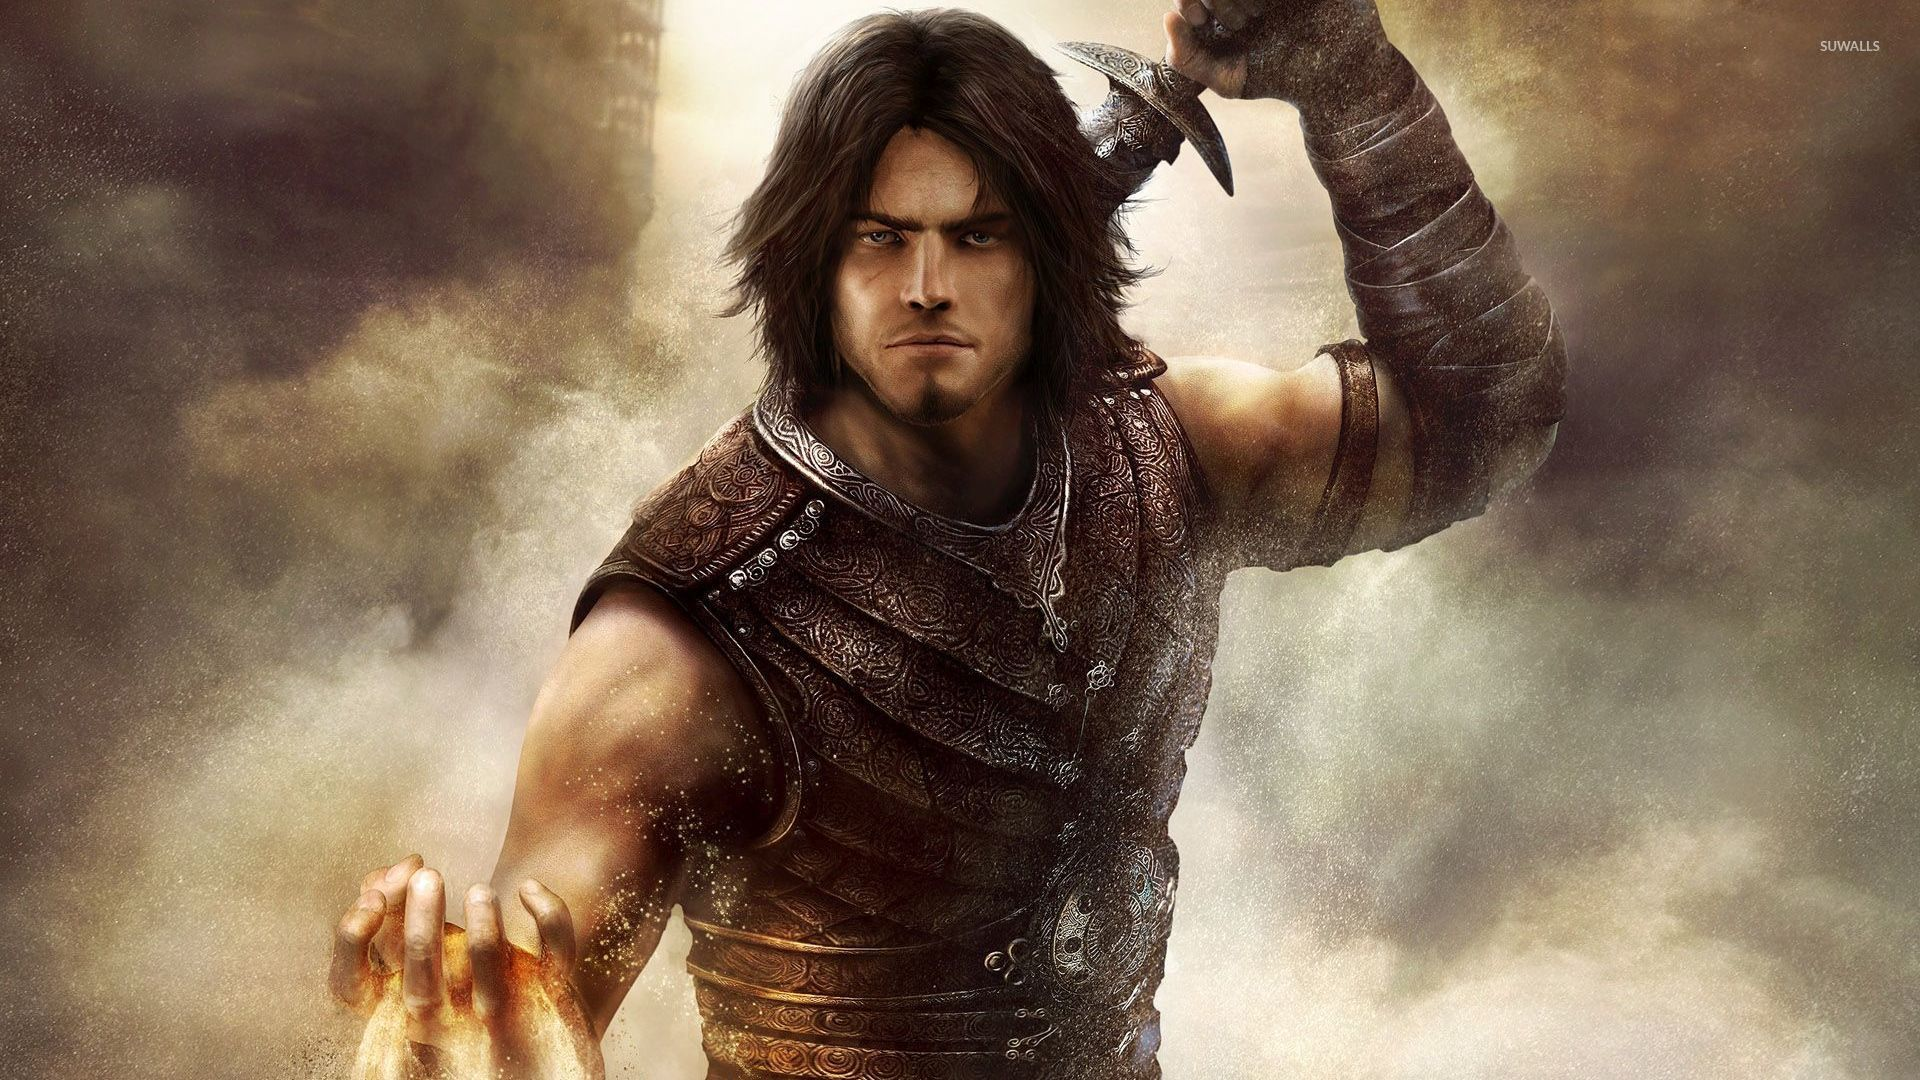 Prince Of Persia With A Sword Wallpaper